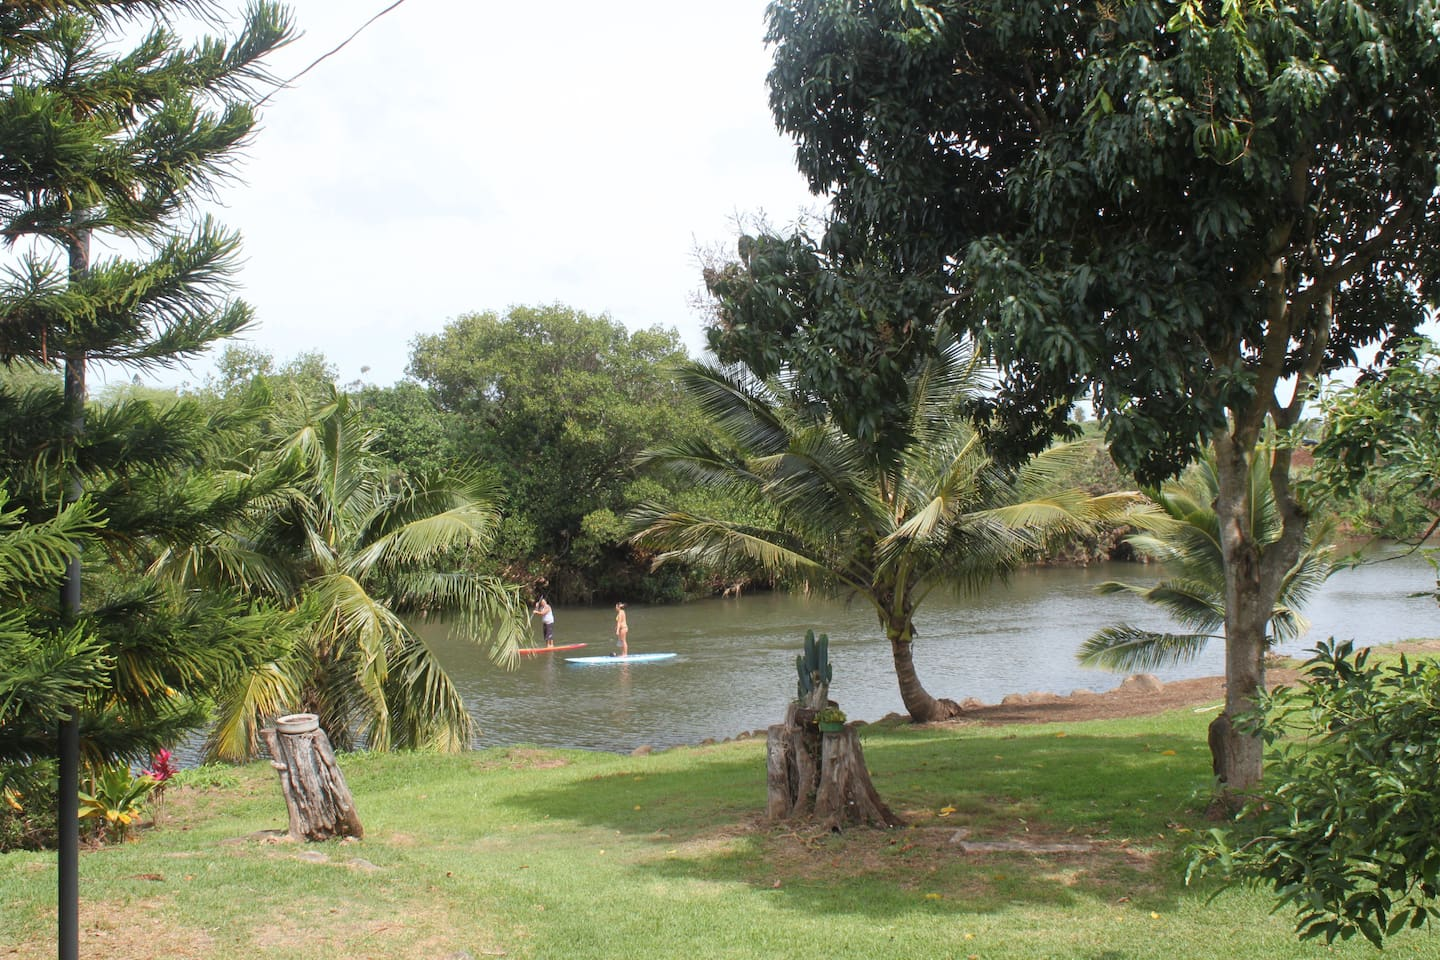 Backyard fronting the Anahulu River